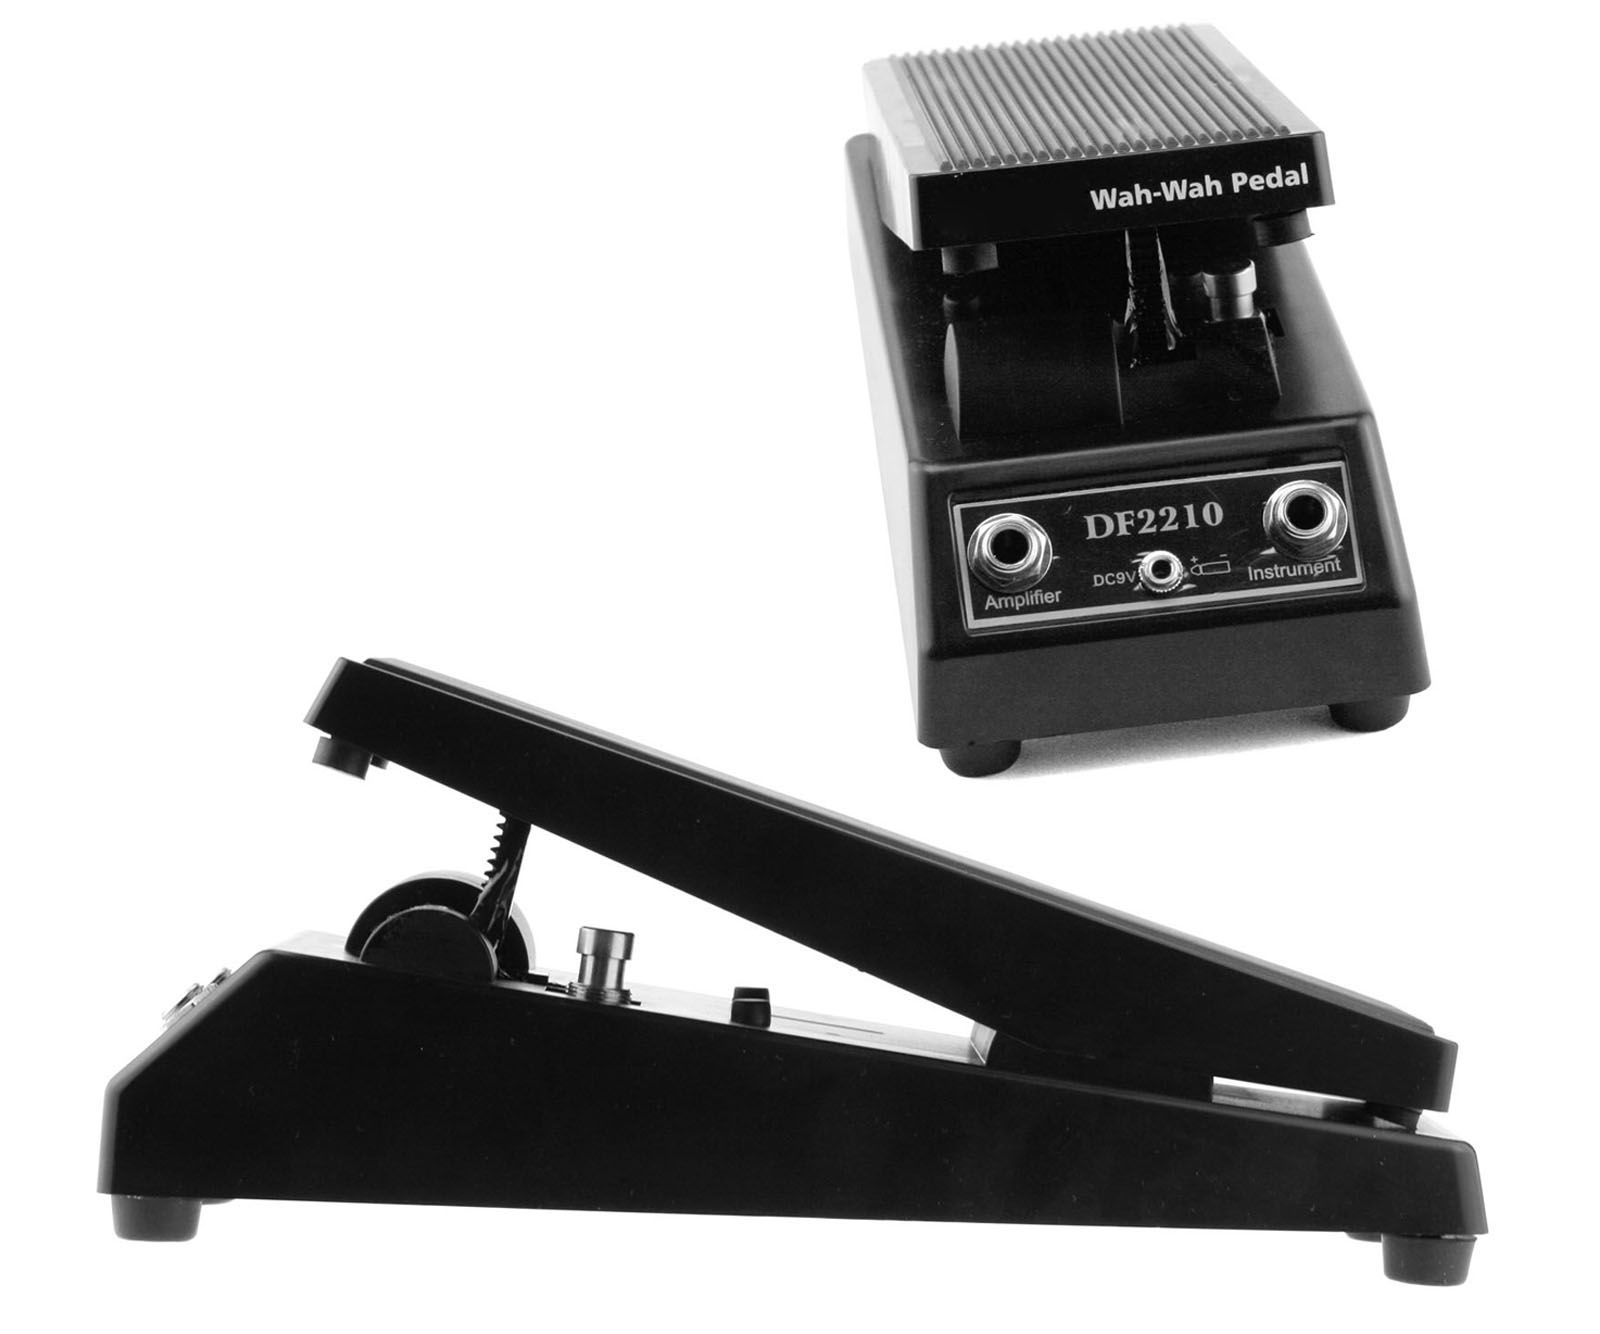 black wah wah electric guitar effect pedal musical instruments 735548255413 ebay. Black Bedroom Furniture Sets. Home Design Ideas